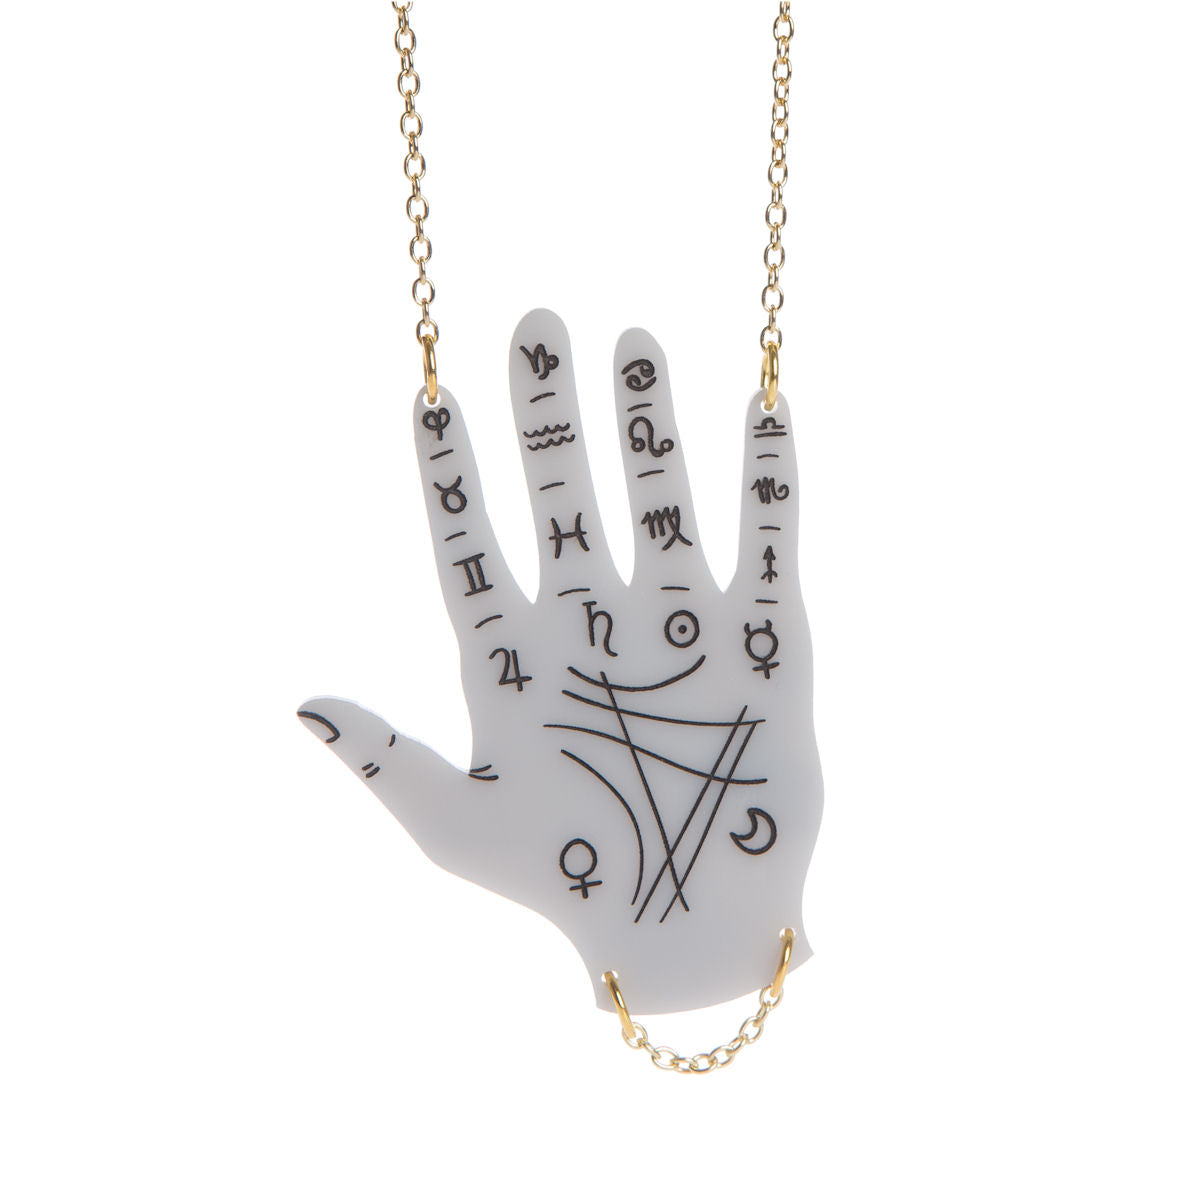 t pave products necklace boutique diamond hamsa meira hand simple